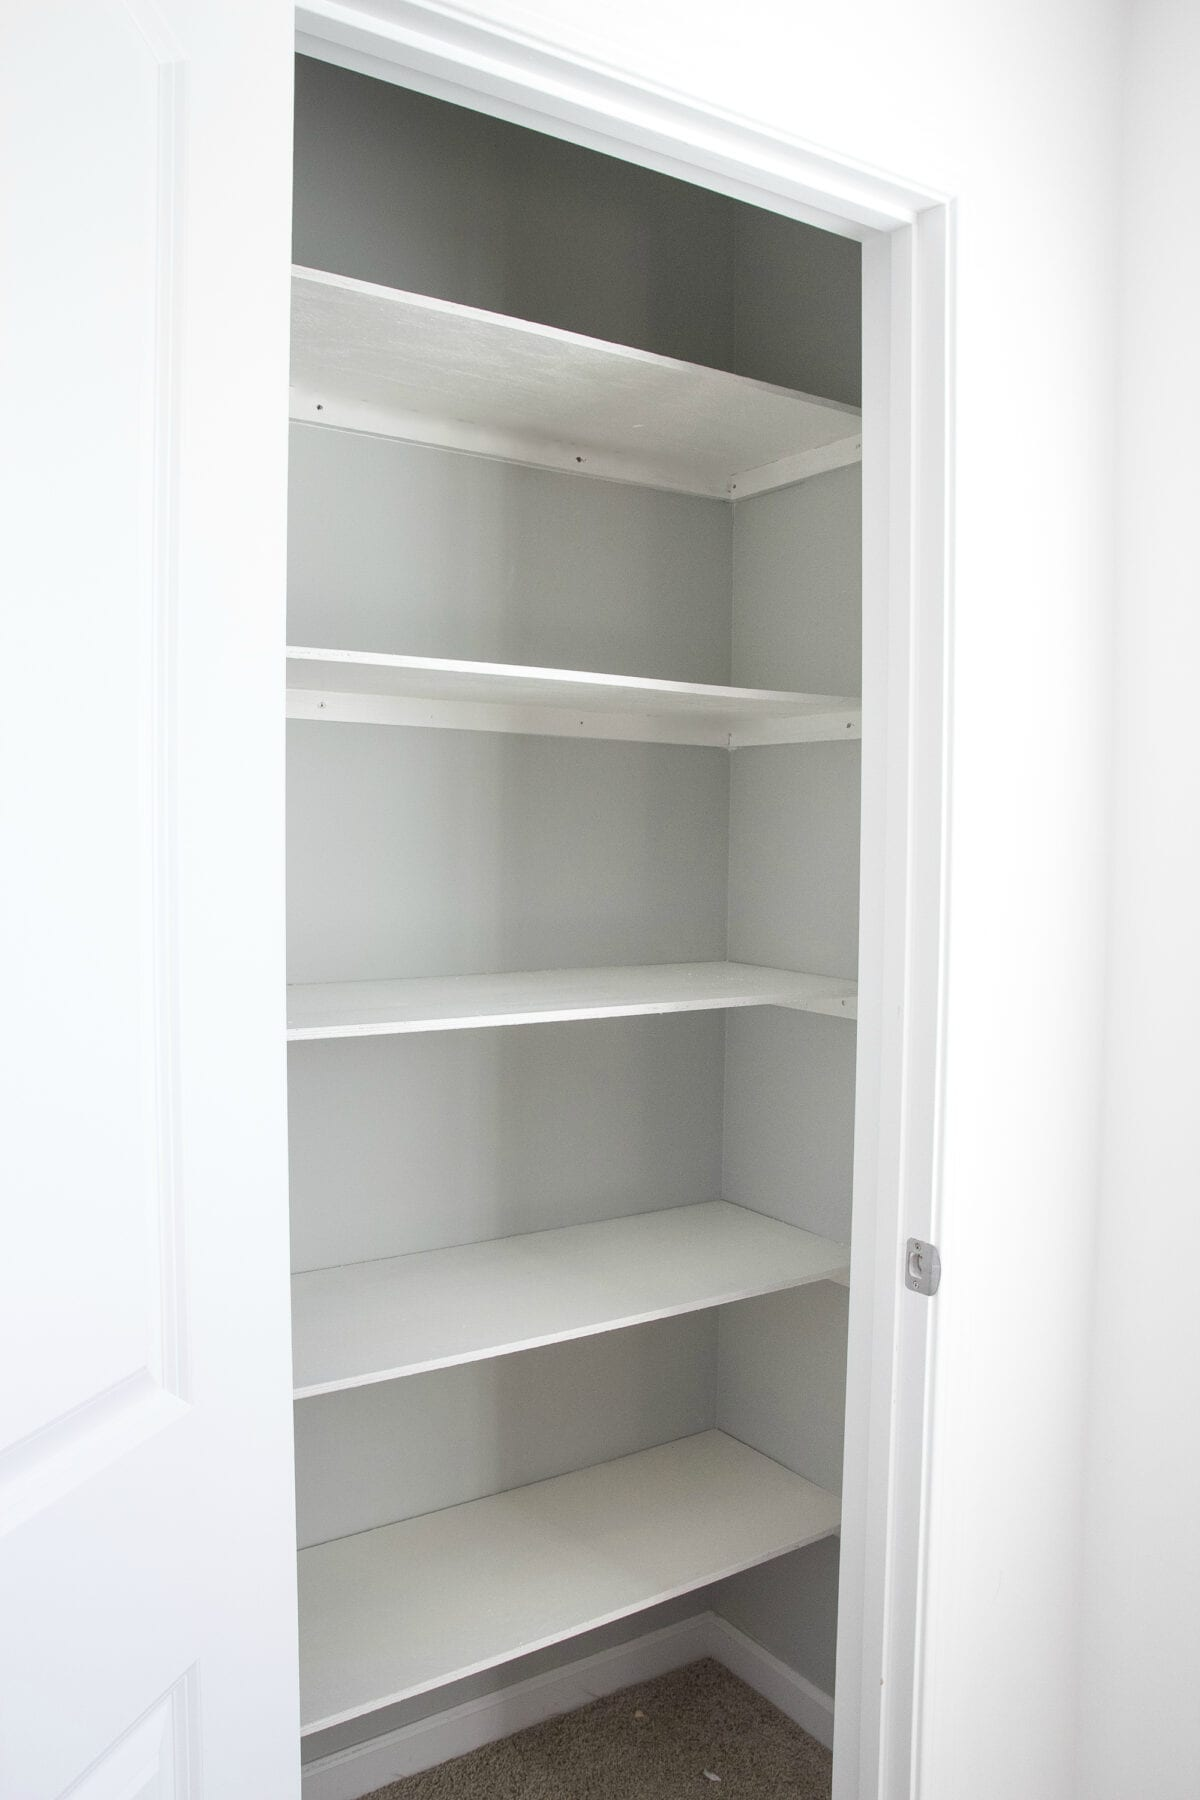 Marvelous Closet Shelving. Basic Diy Closet Shelving | Blesserhouse.com Super Awesome  Beginner Home Improvement